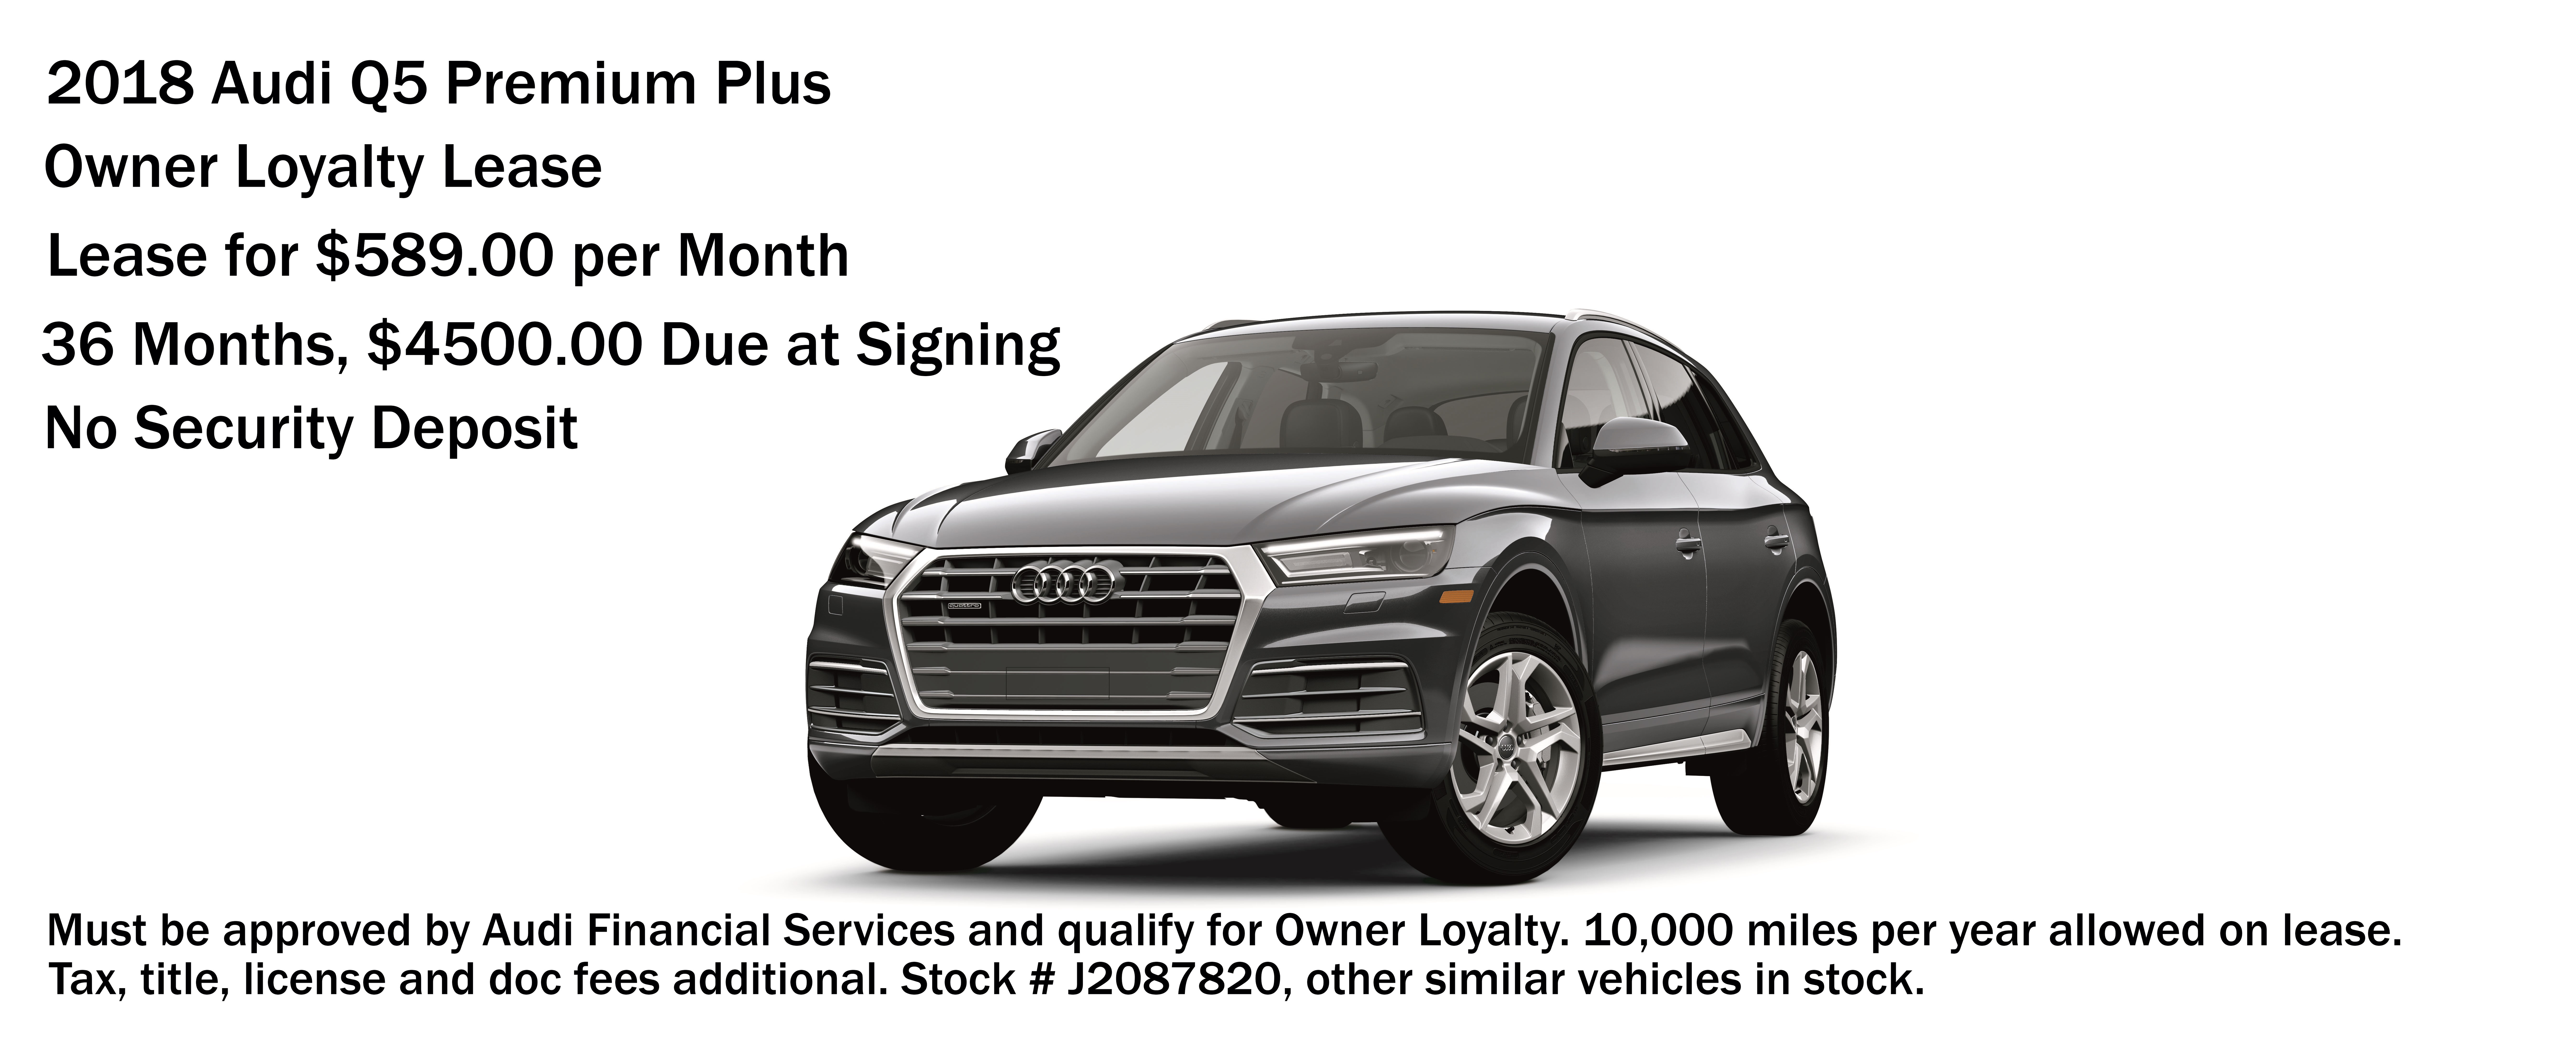 willow in vehicles sale audi pa htm for grove owned premium featured pre plus suv